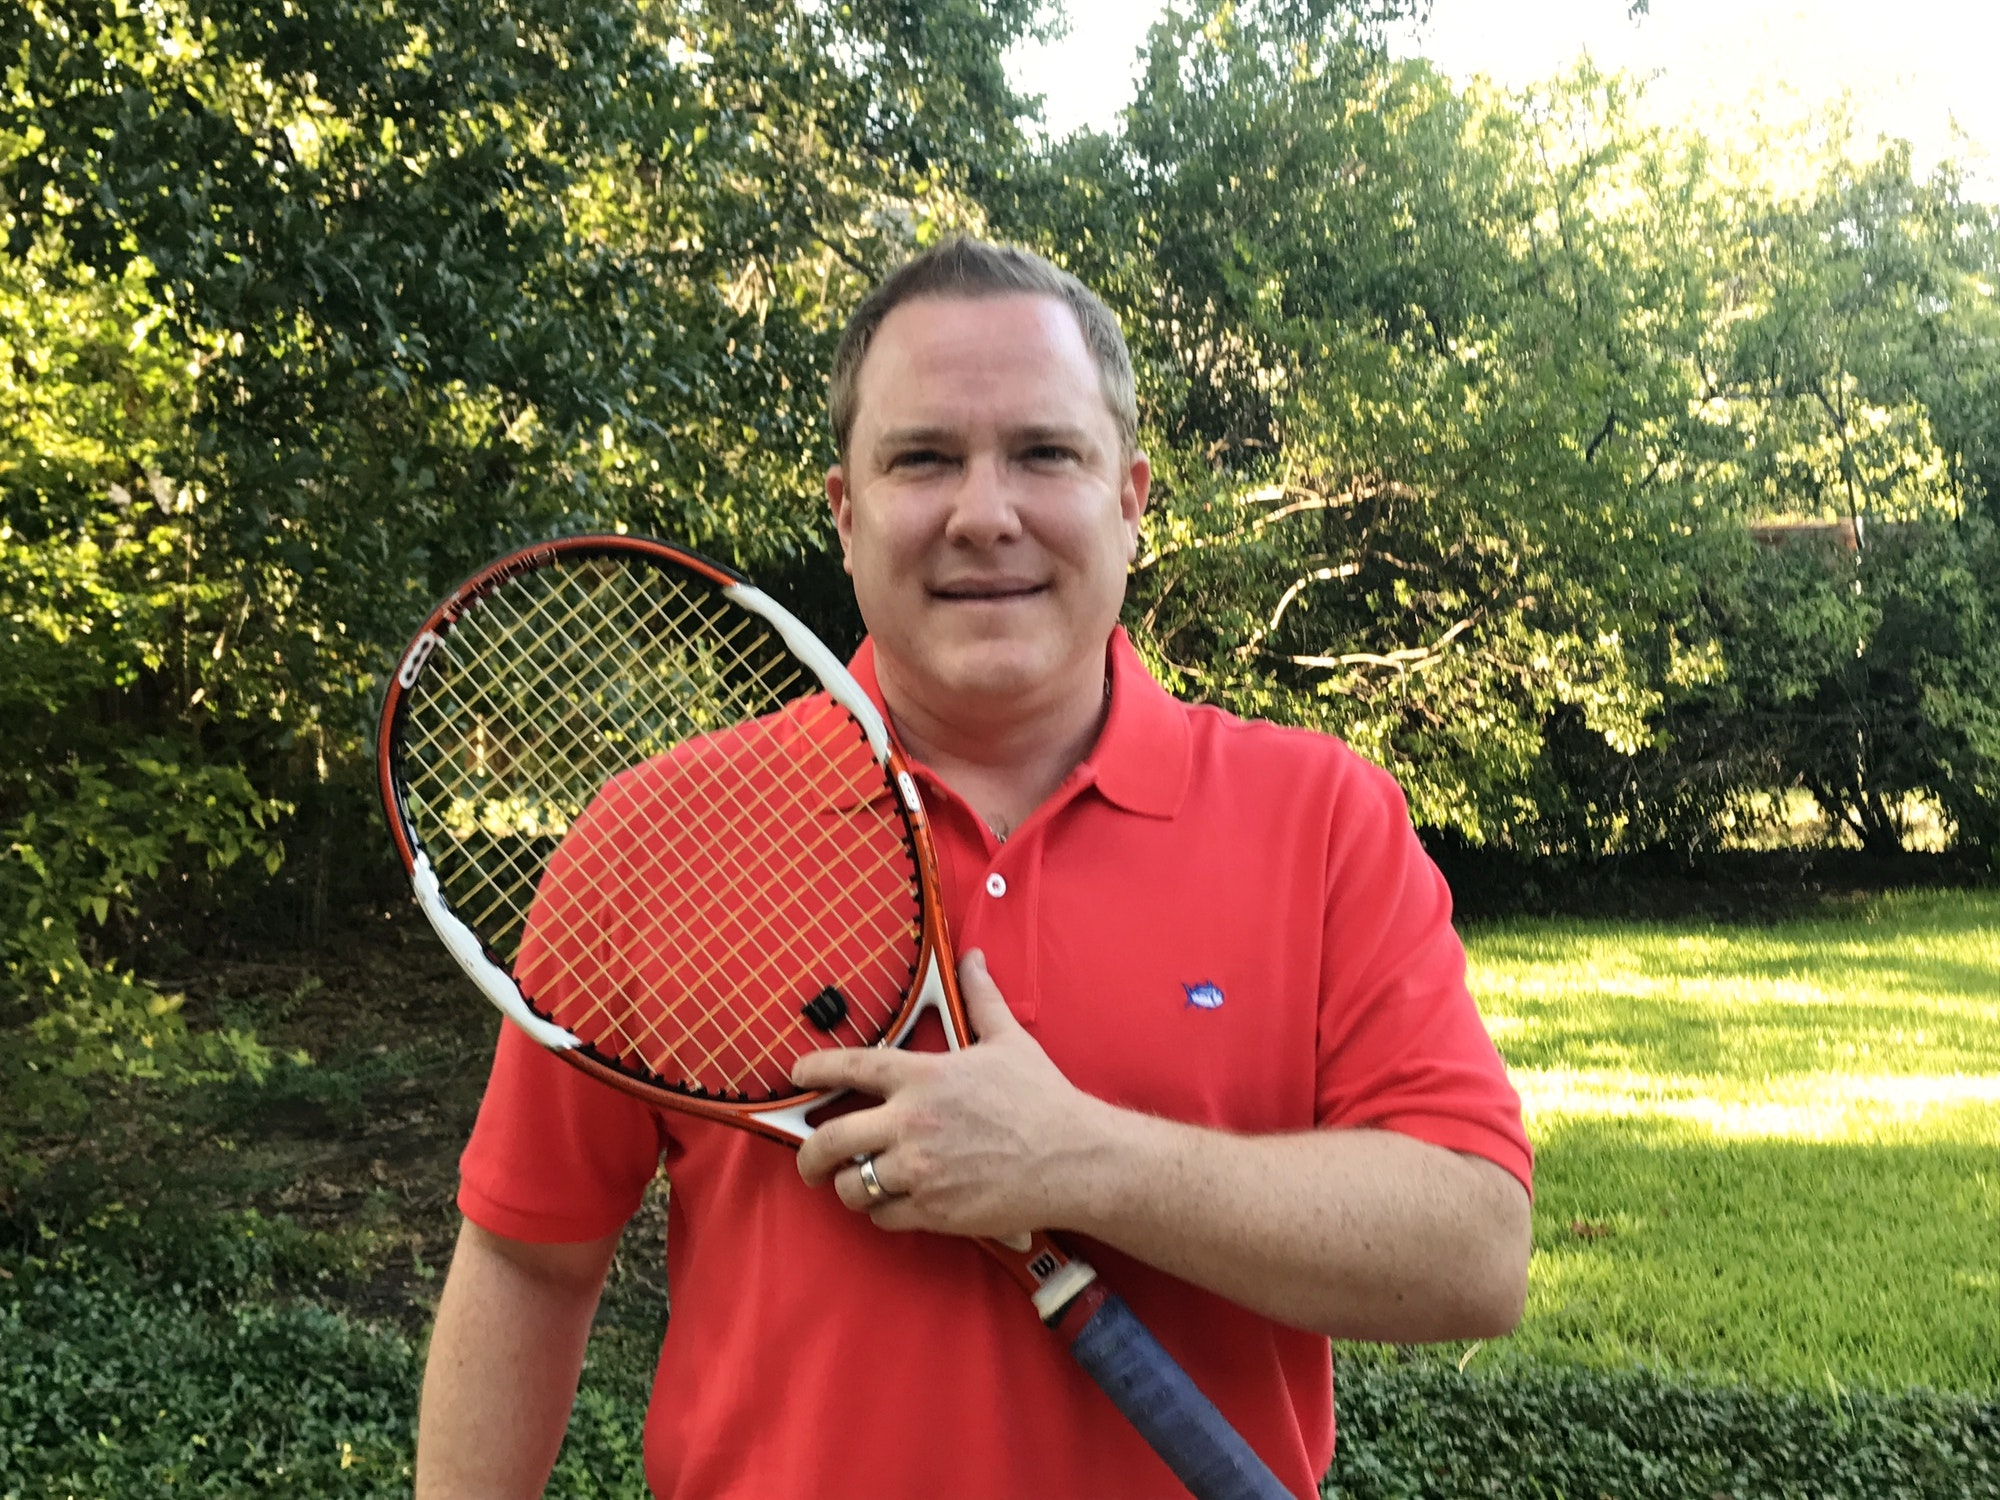 Will H. teaches tennis lessons in Dallas, TX